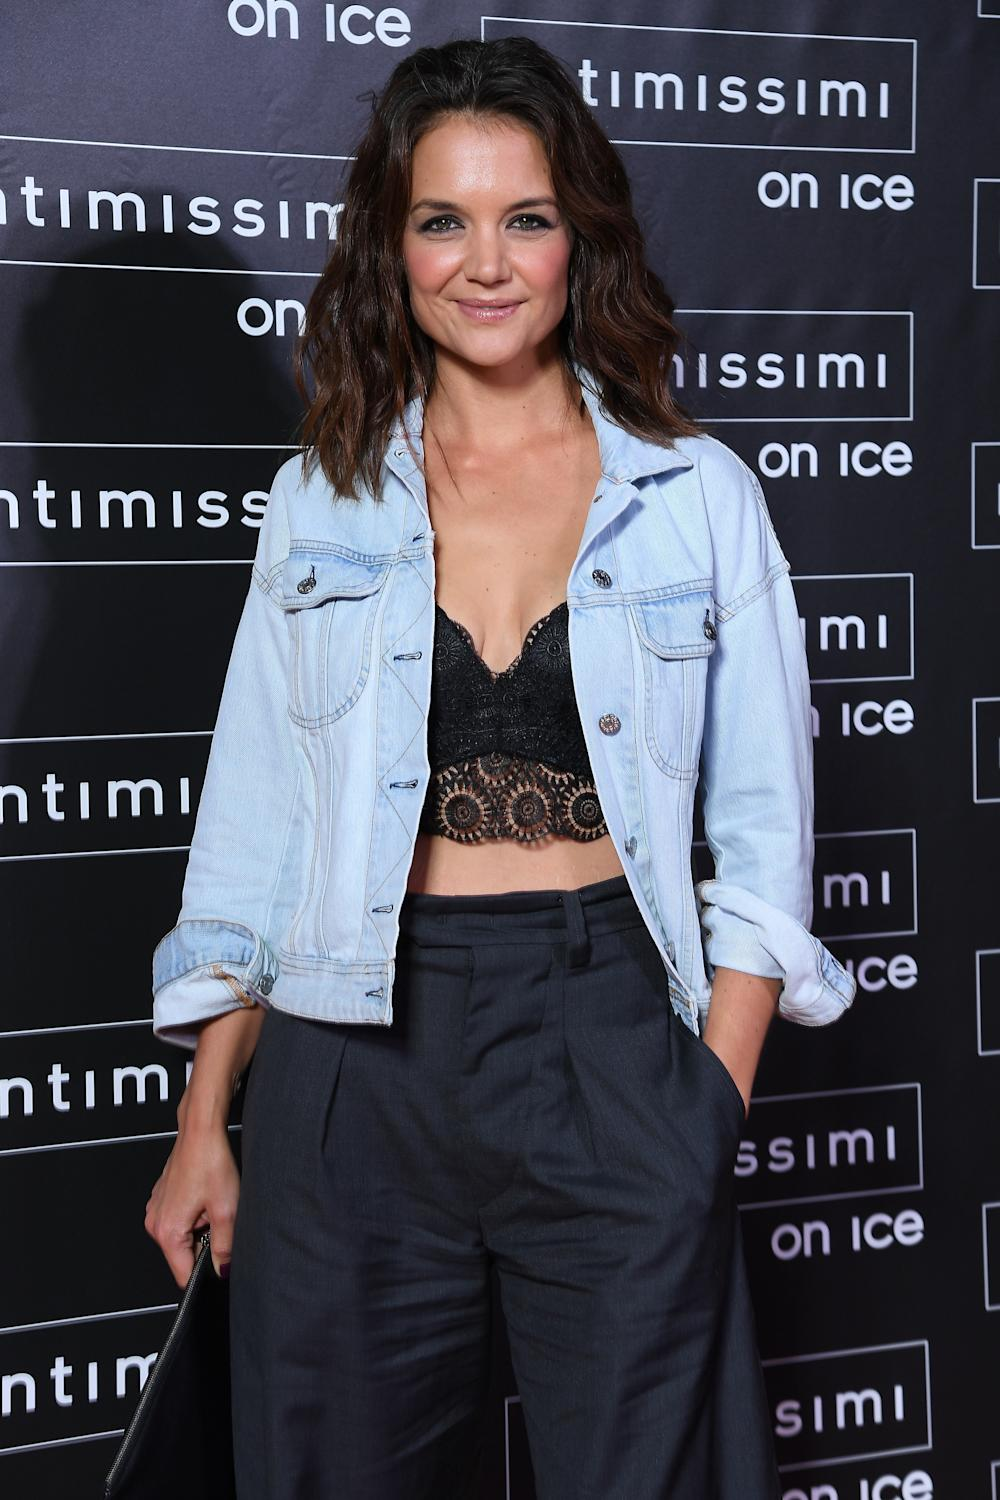 Katie Holmes attends Intimissimi On Ice on Oct. 6, 2017 in Verona, Italy. (Venturelli via Getty Images)